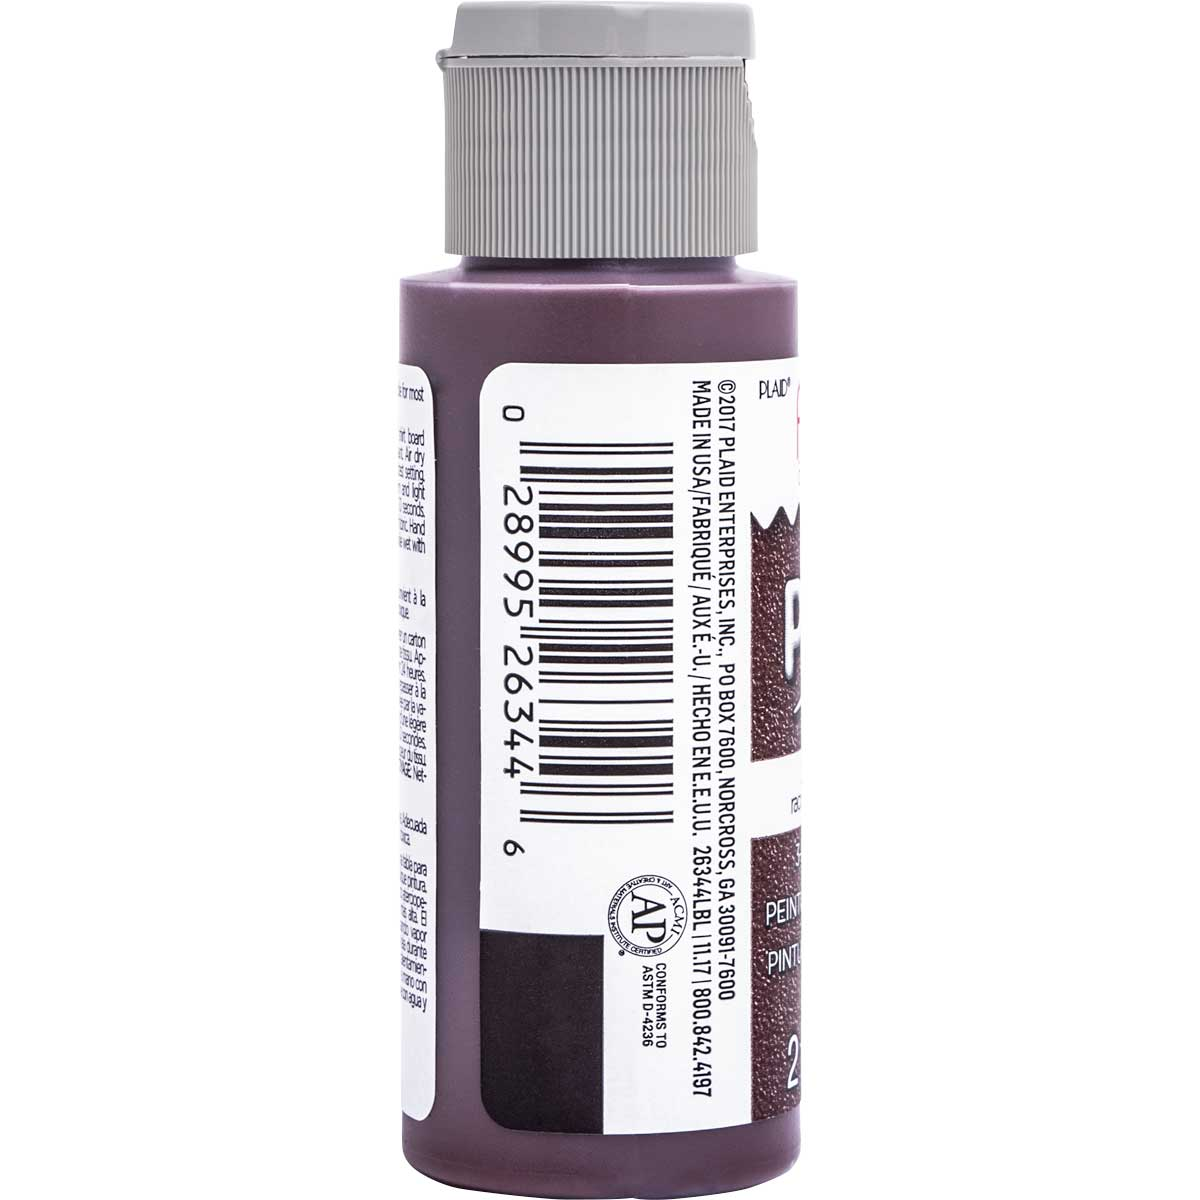 Fabric Creations™ Plush™ 3-D Fabric Paints - Rootbeer, 2 oz.